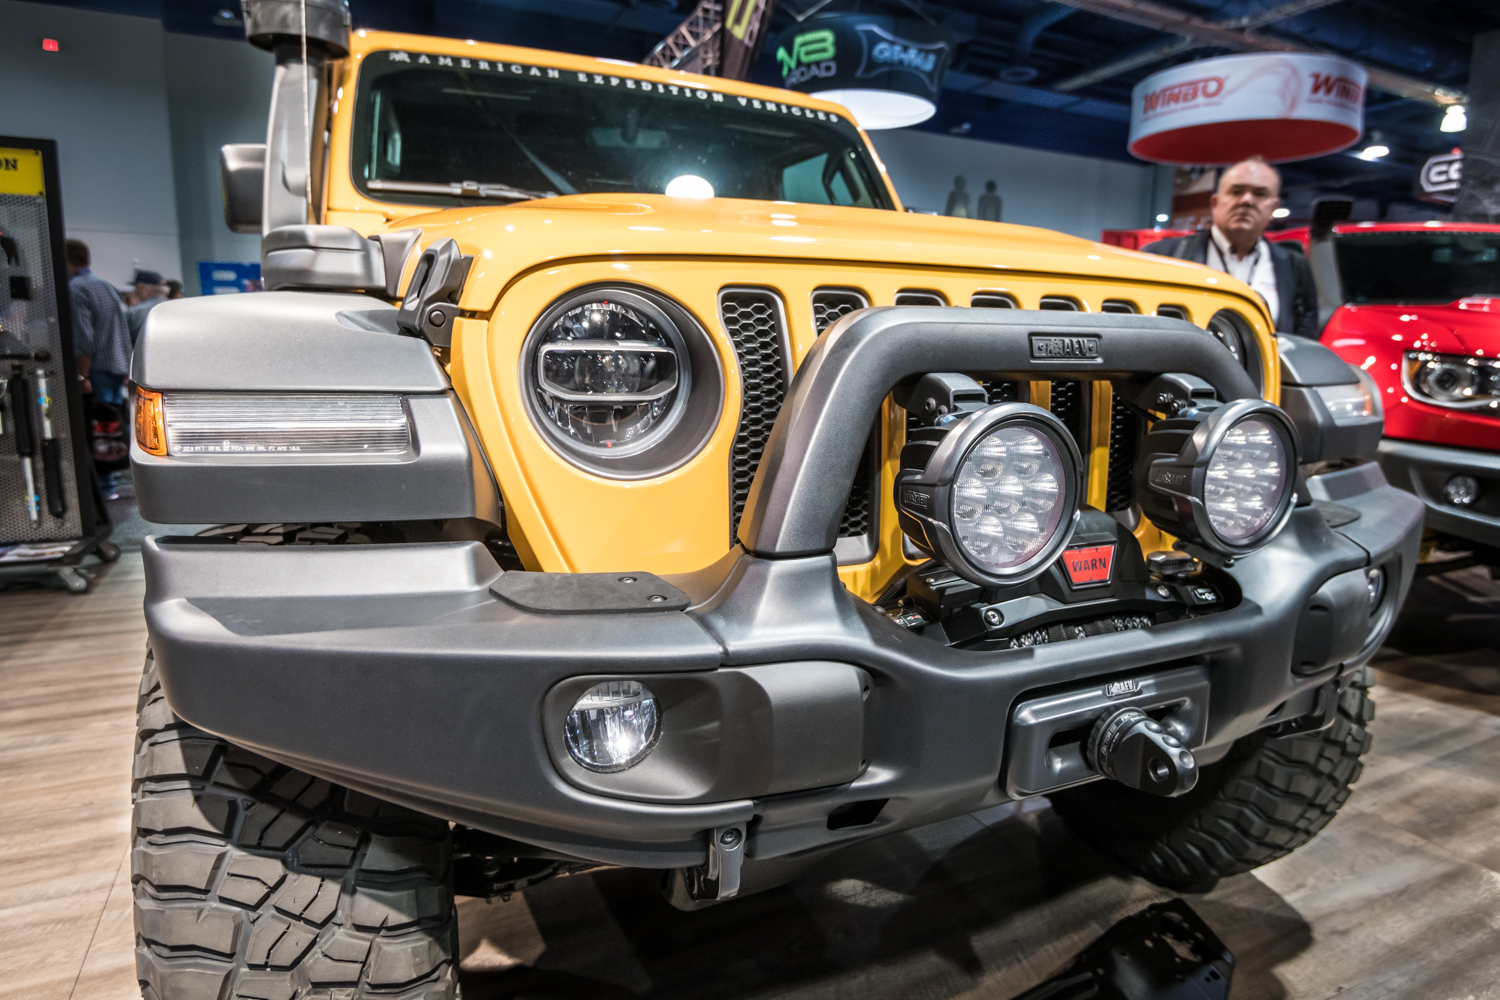 Jeep Wrangler JL: Top Off-Road Parts to Upgrade Your Ride